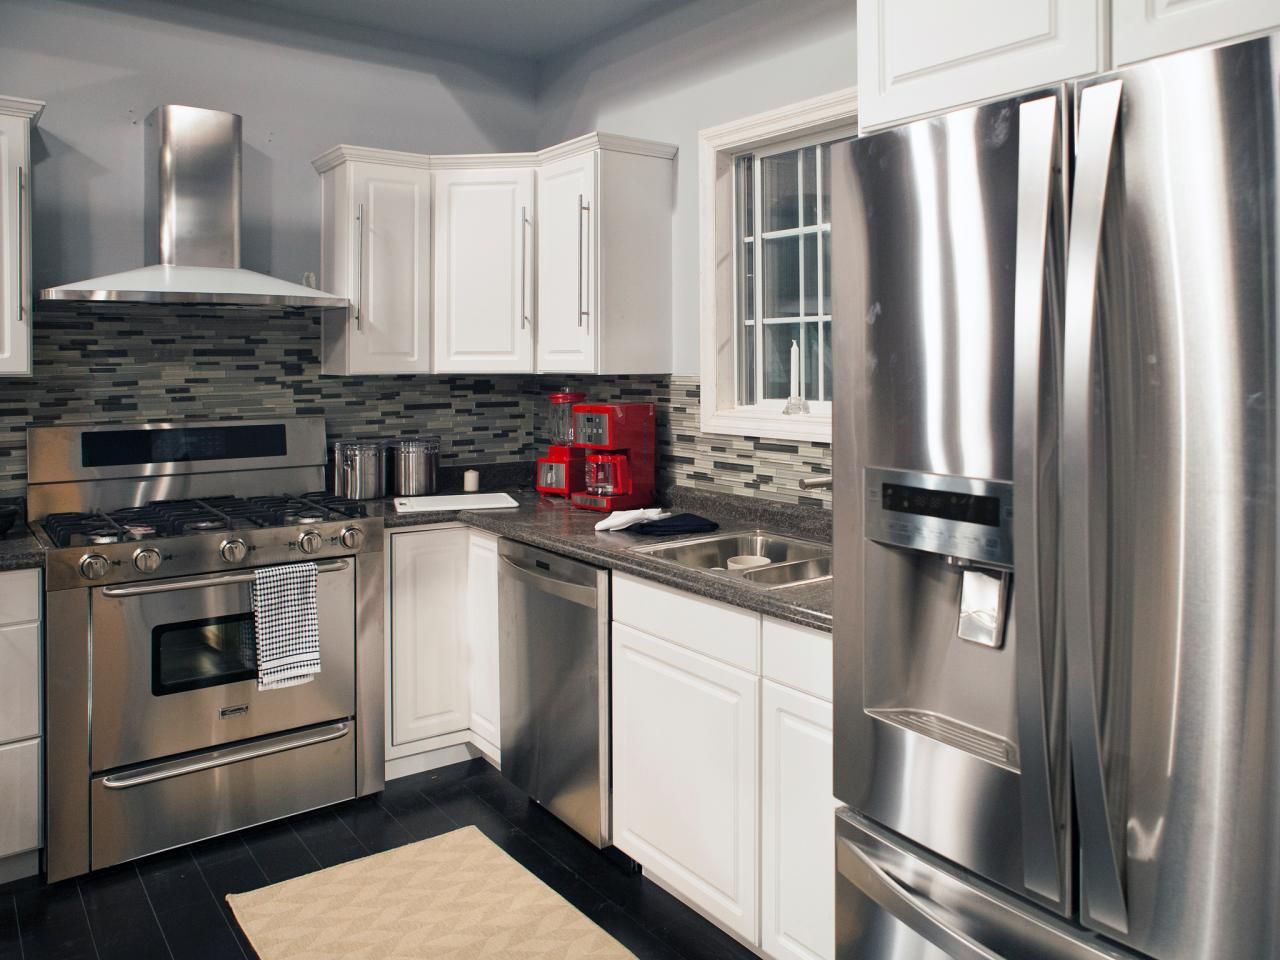 Cool Gray Kitchen With Stainless Steel Appliances Grey Kitchen Cabinets Red Appliances Red Kitchen Appliances